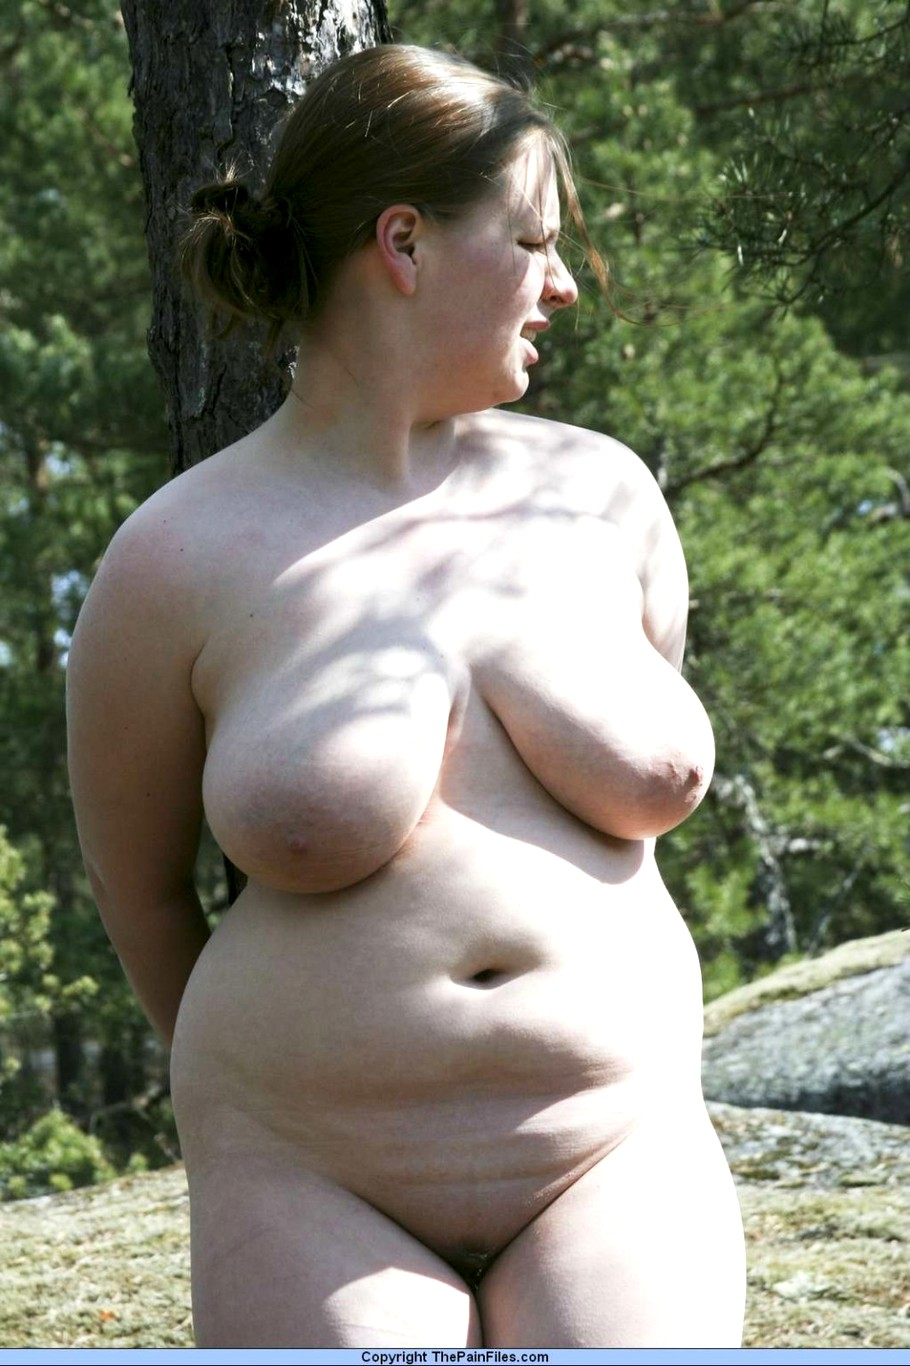 chubby-outdoor-nudes-free